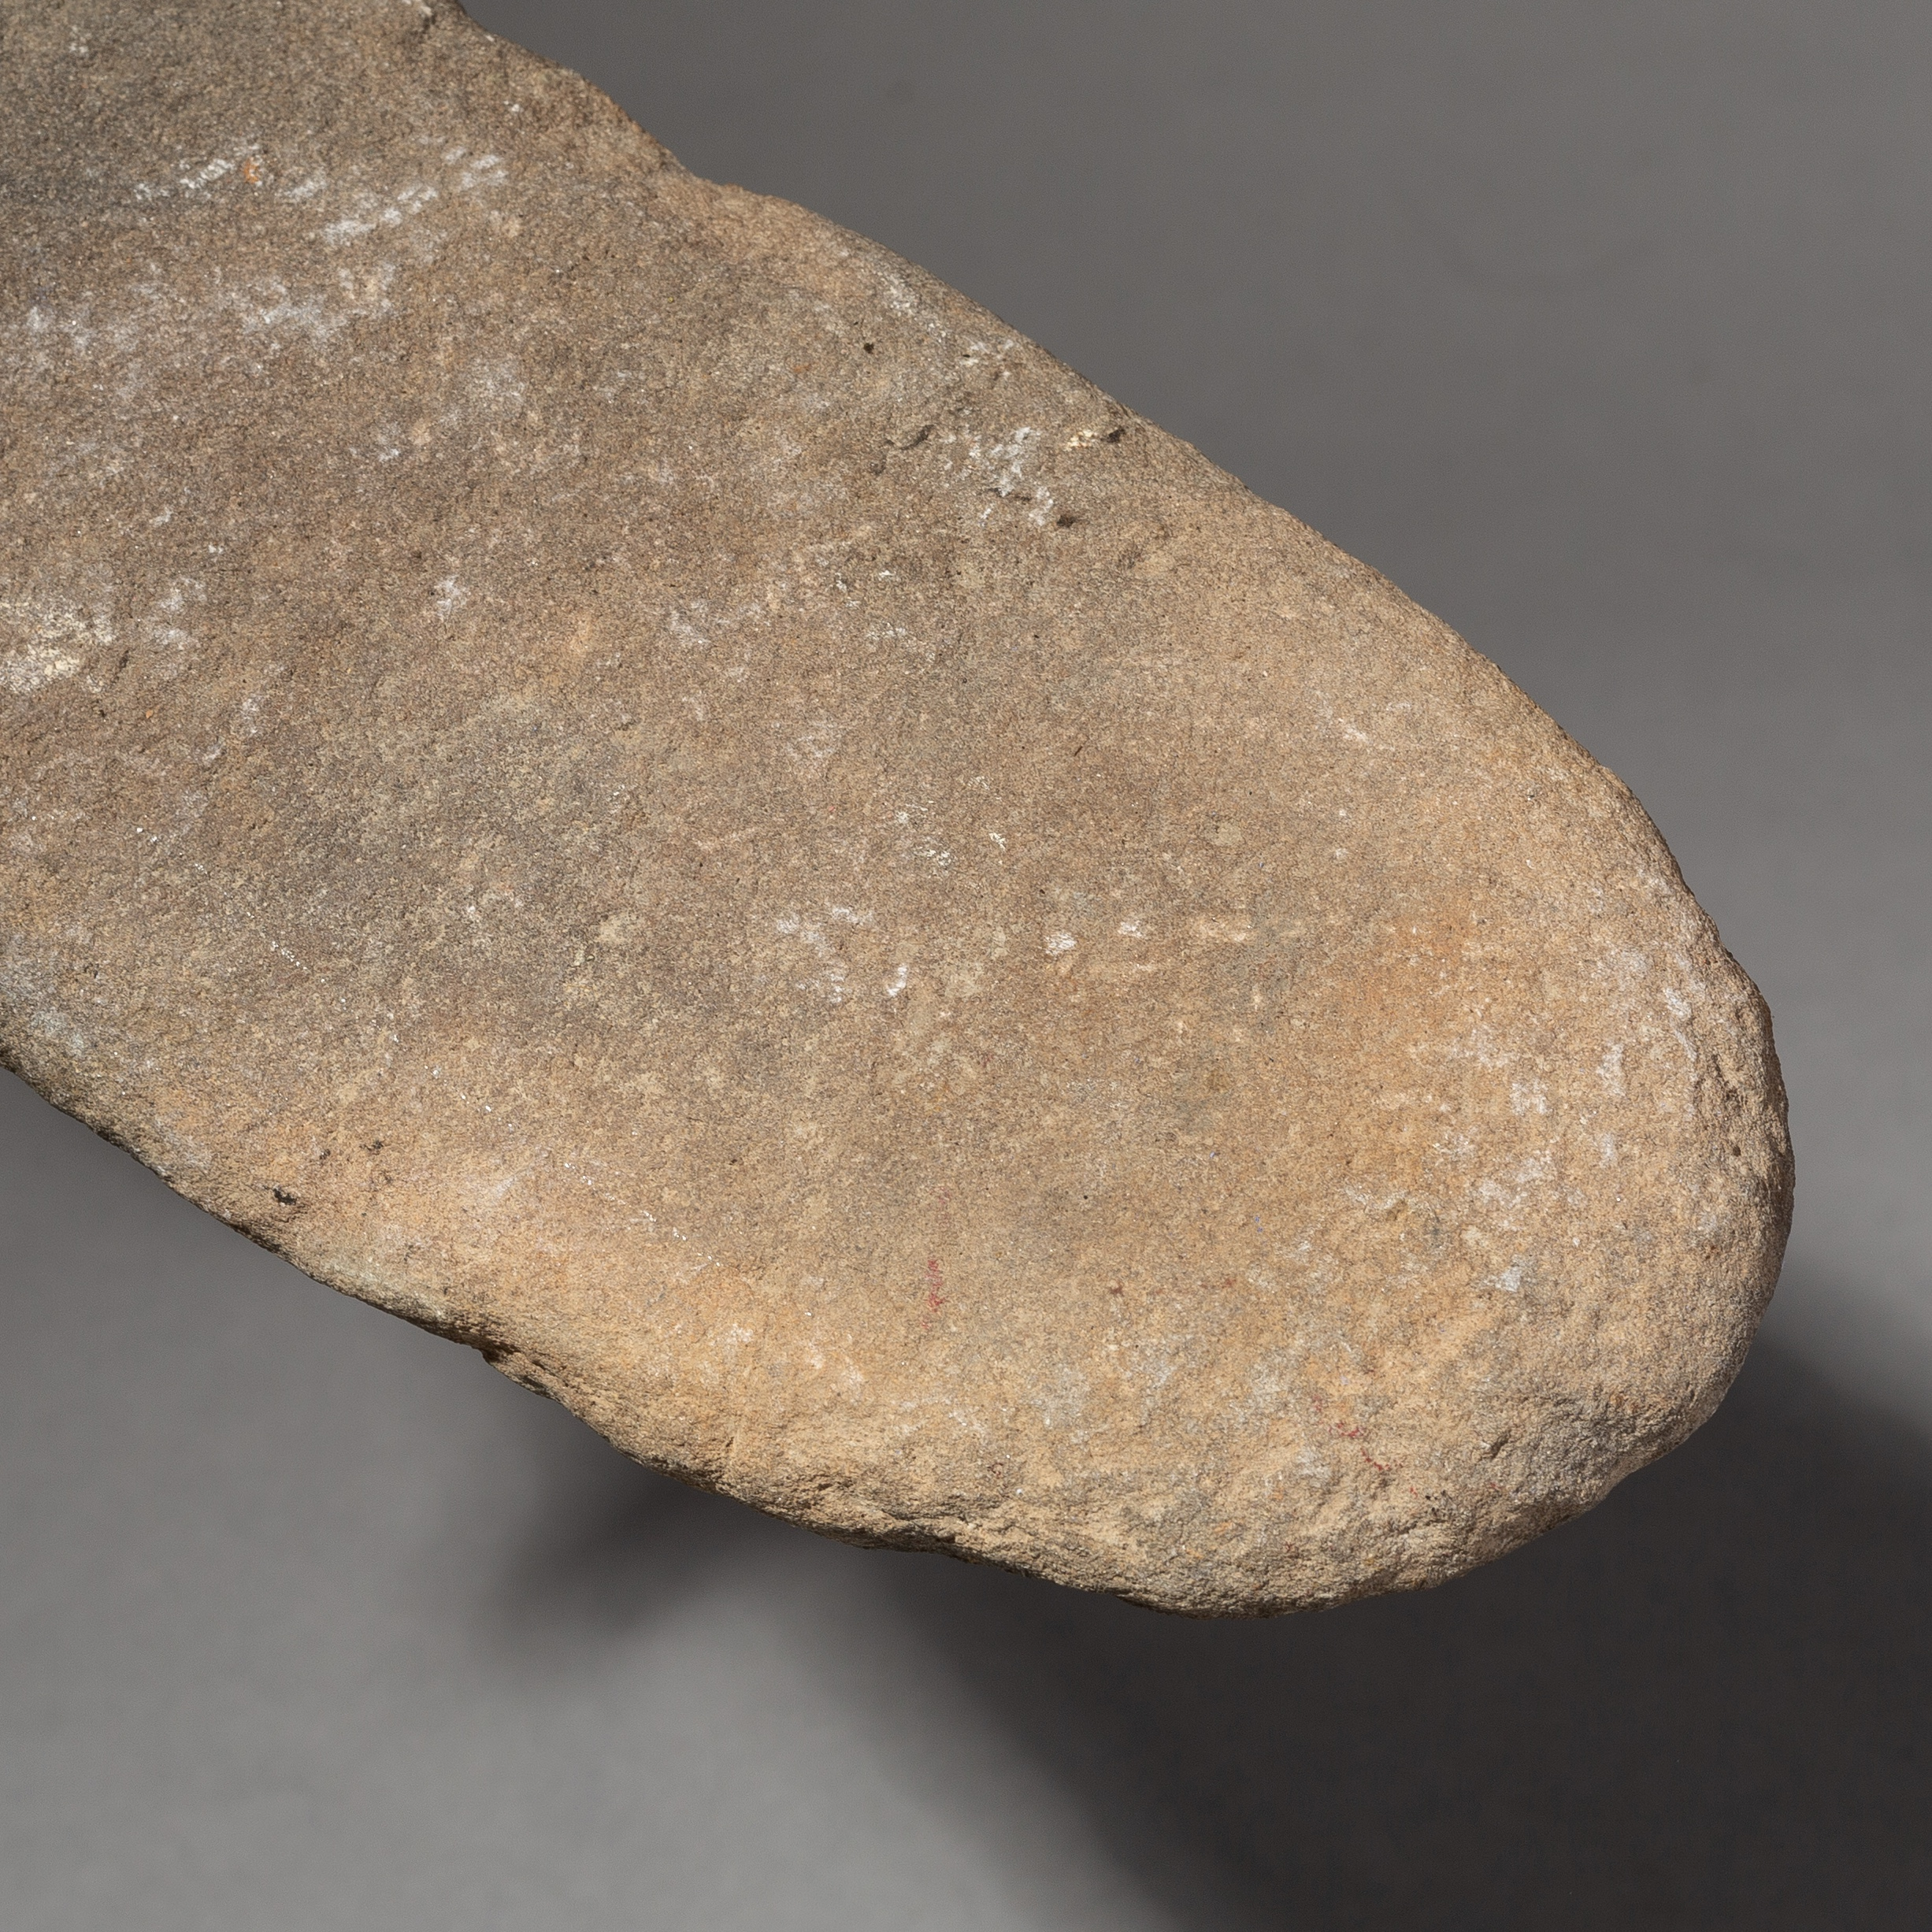 AN ANTIQUE STONE MORTAR FROM THE SAHARA ( No 2176 )